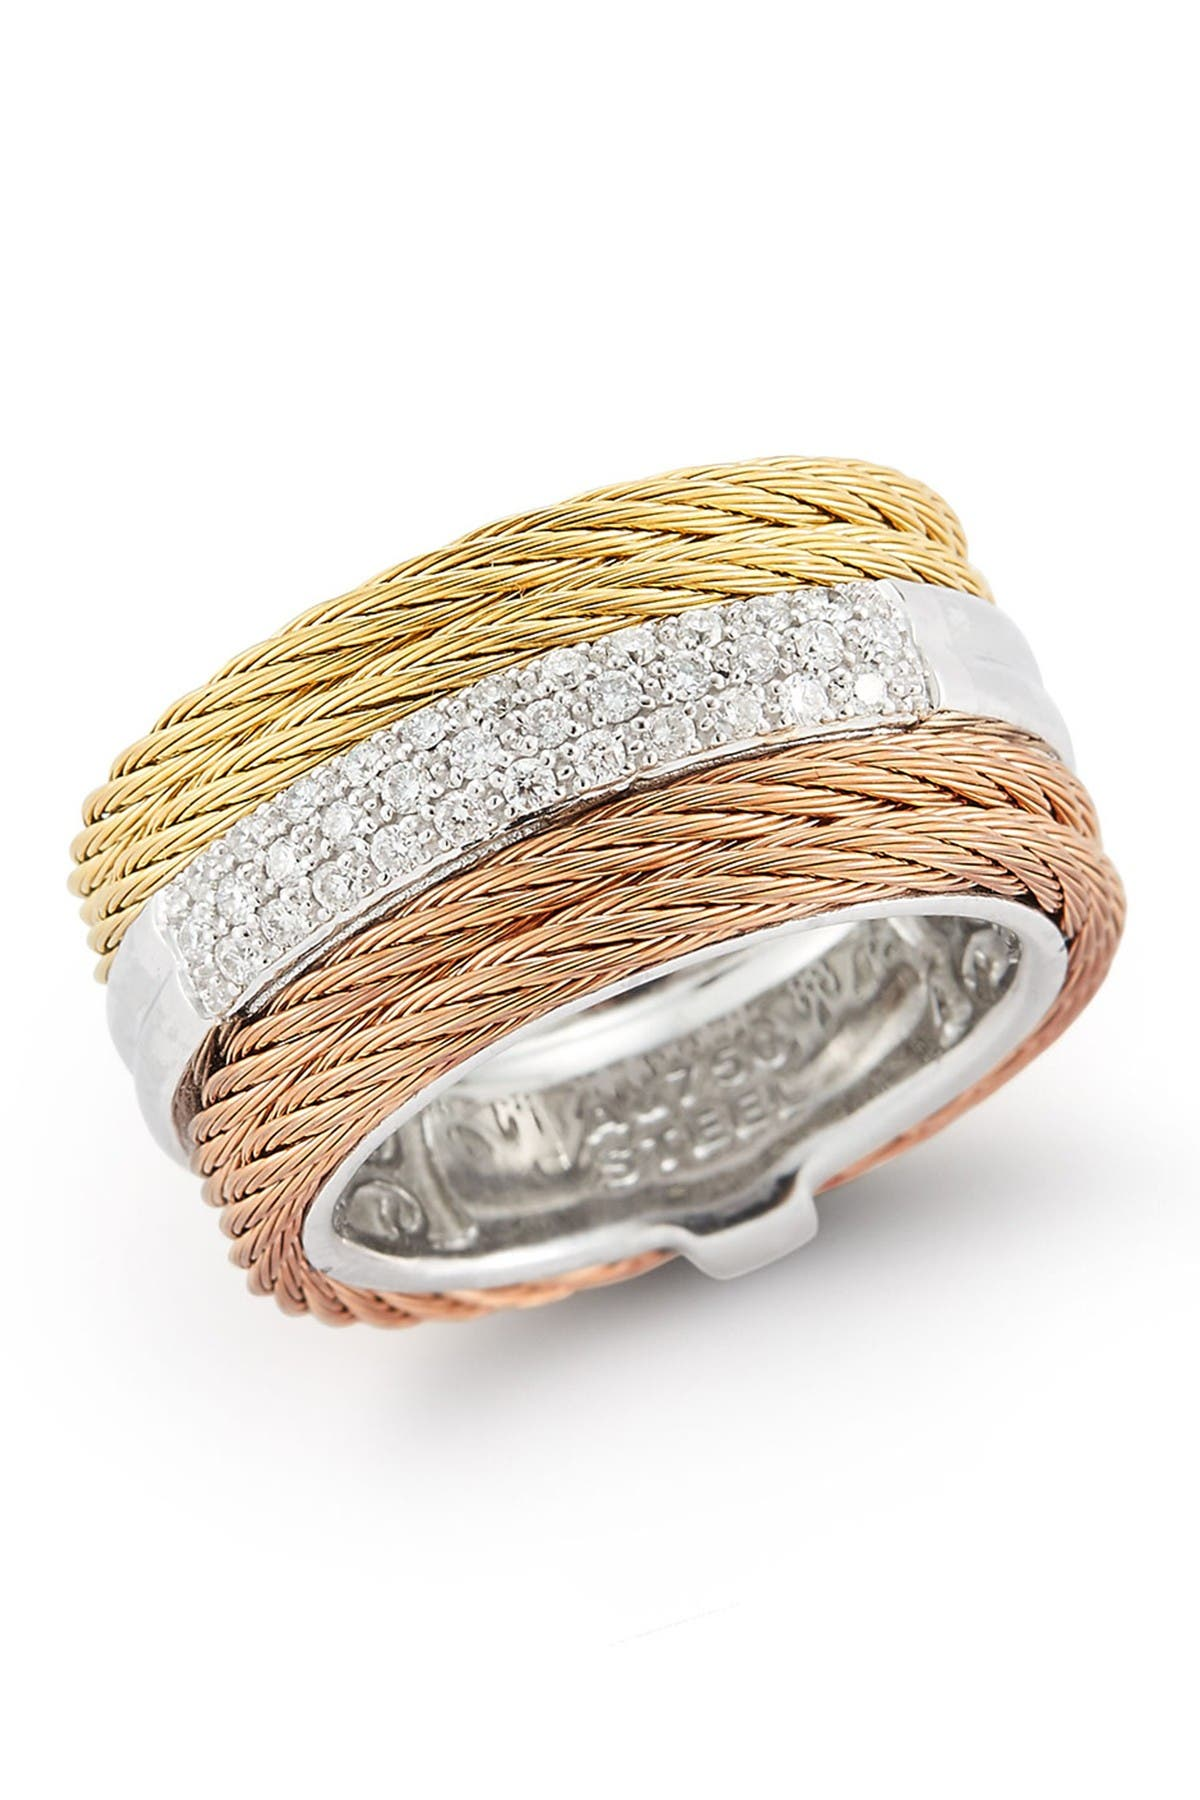 Image of ALOR Tri-Tone Cable & Diamond Band Ring - Size 7 - 0.28 ctw